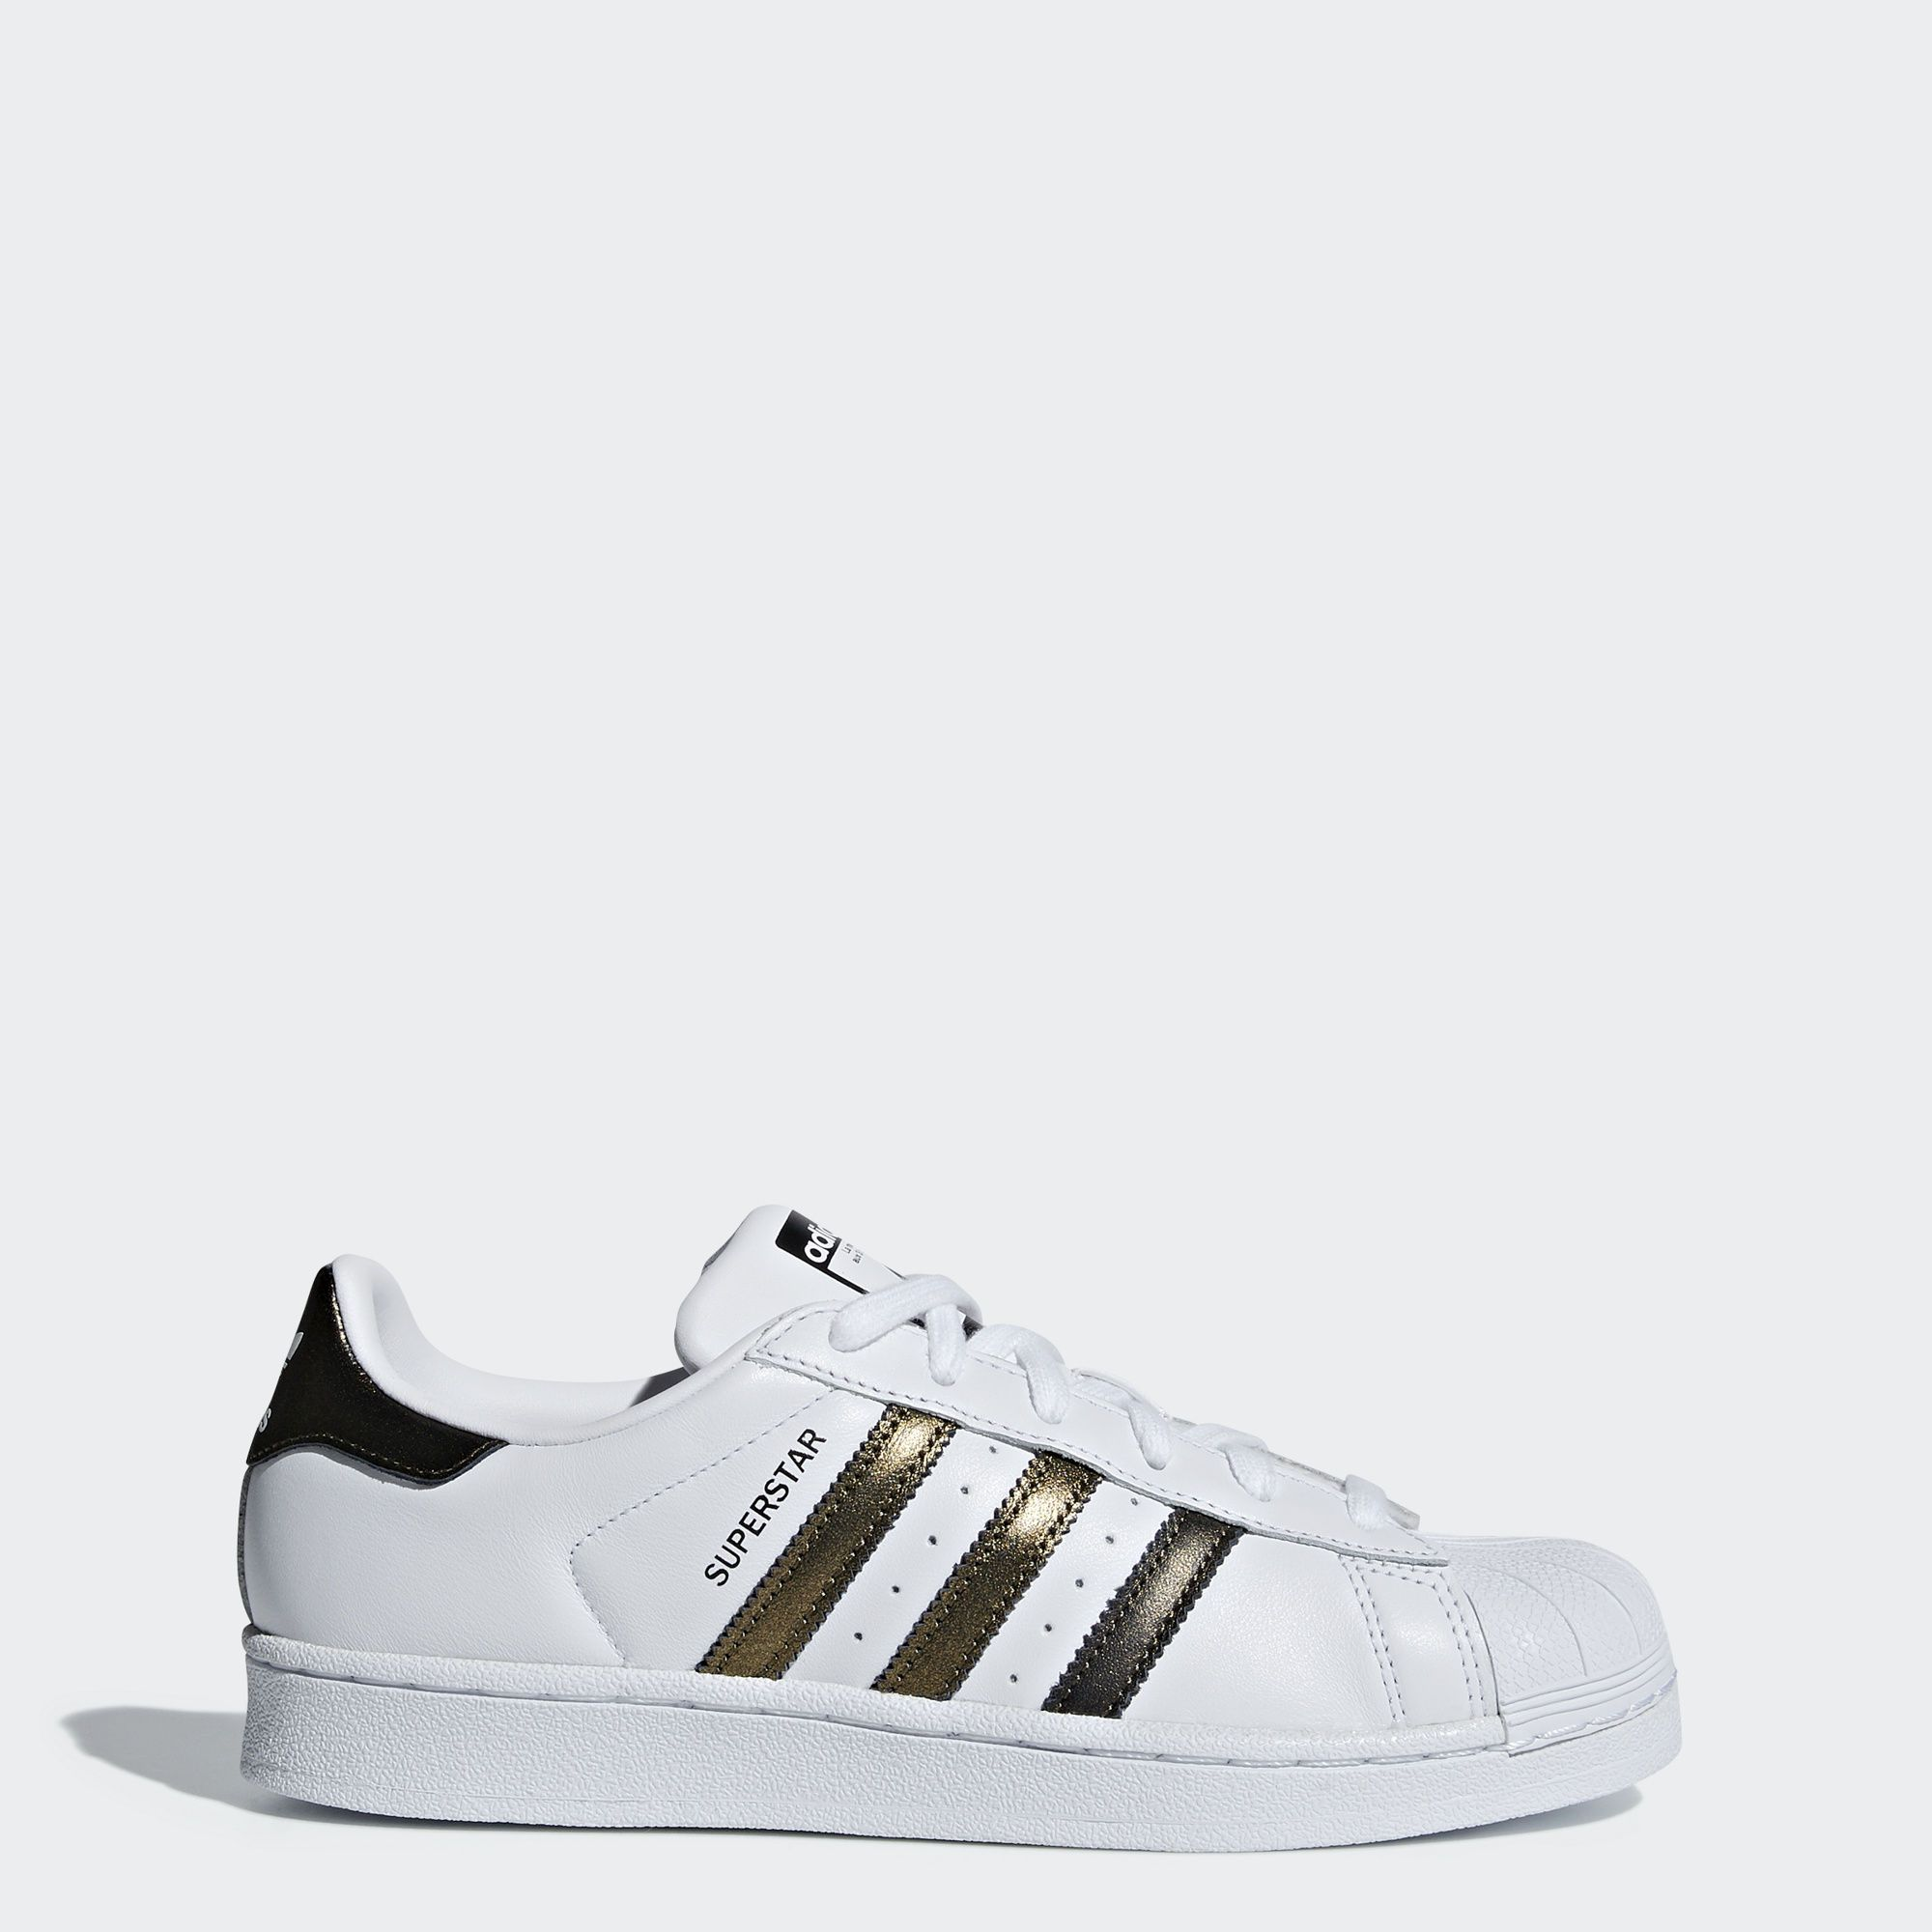 sst shoes adidas